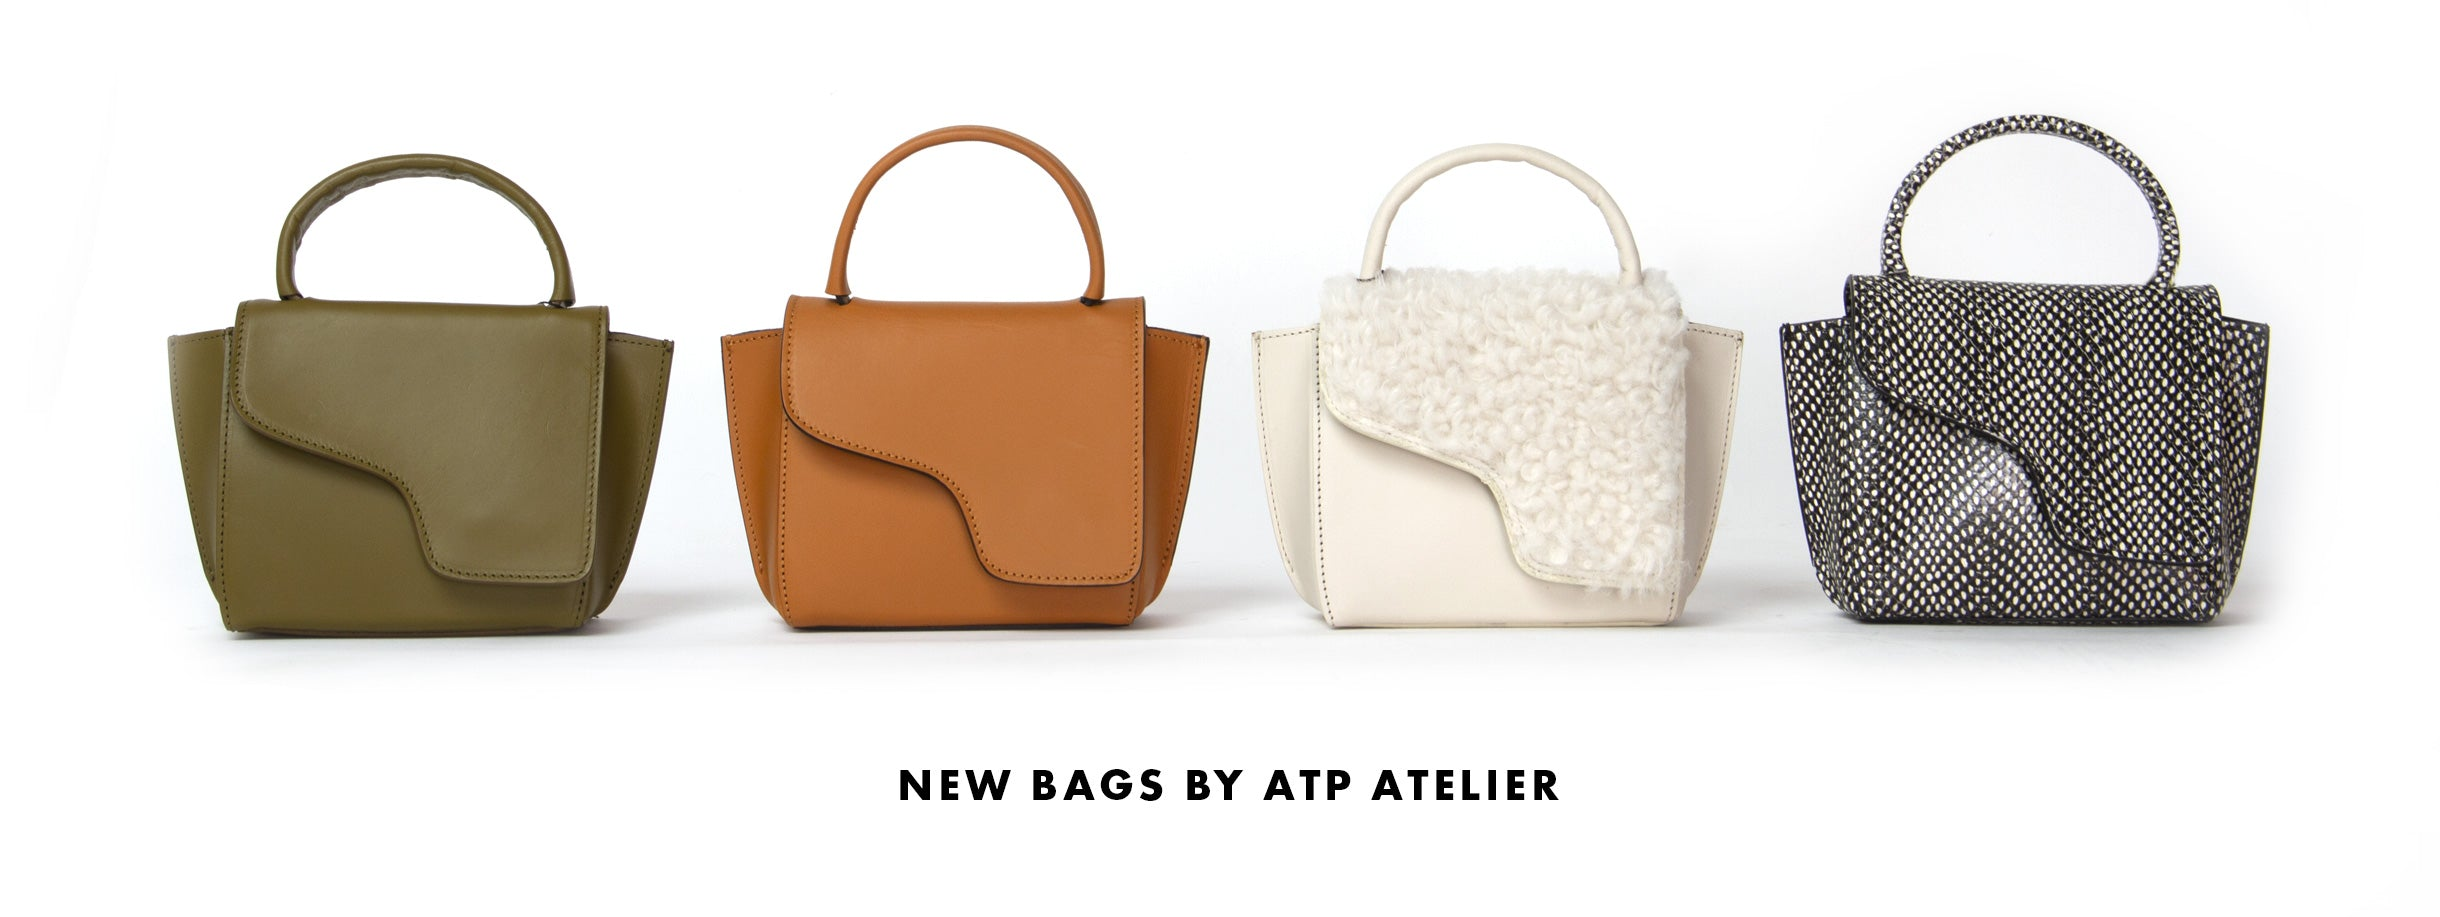 New bags from ATP Atelier